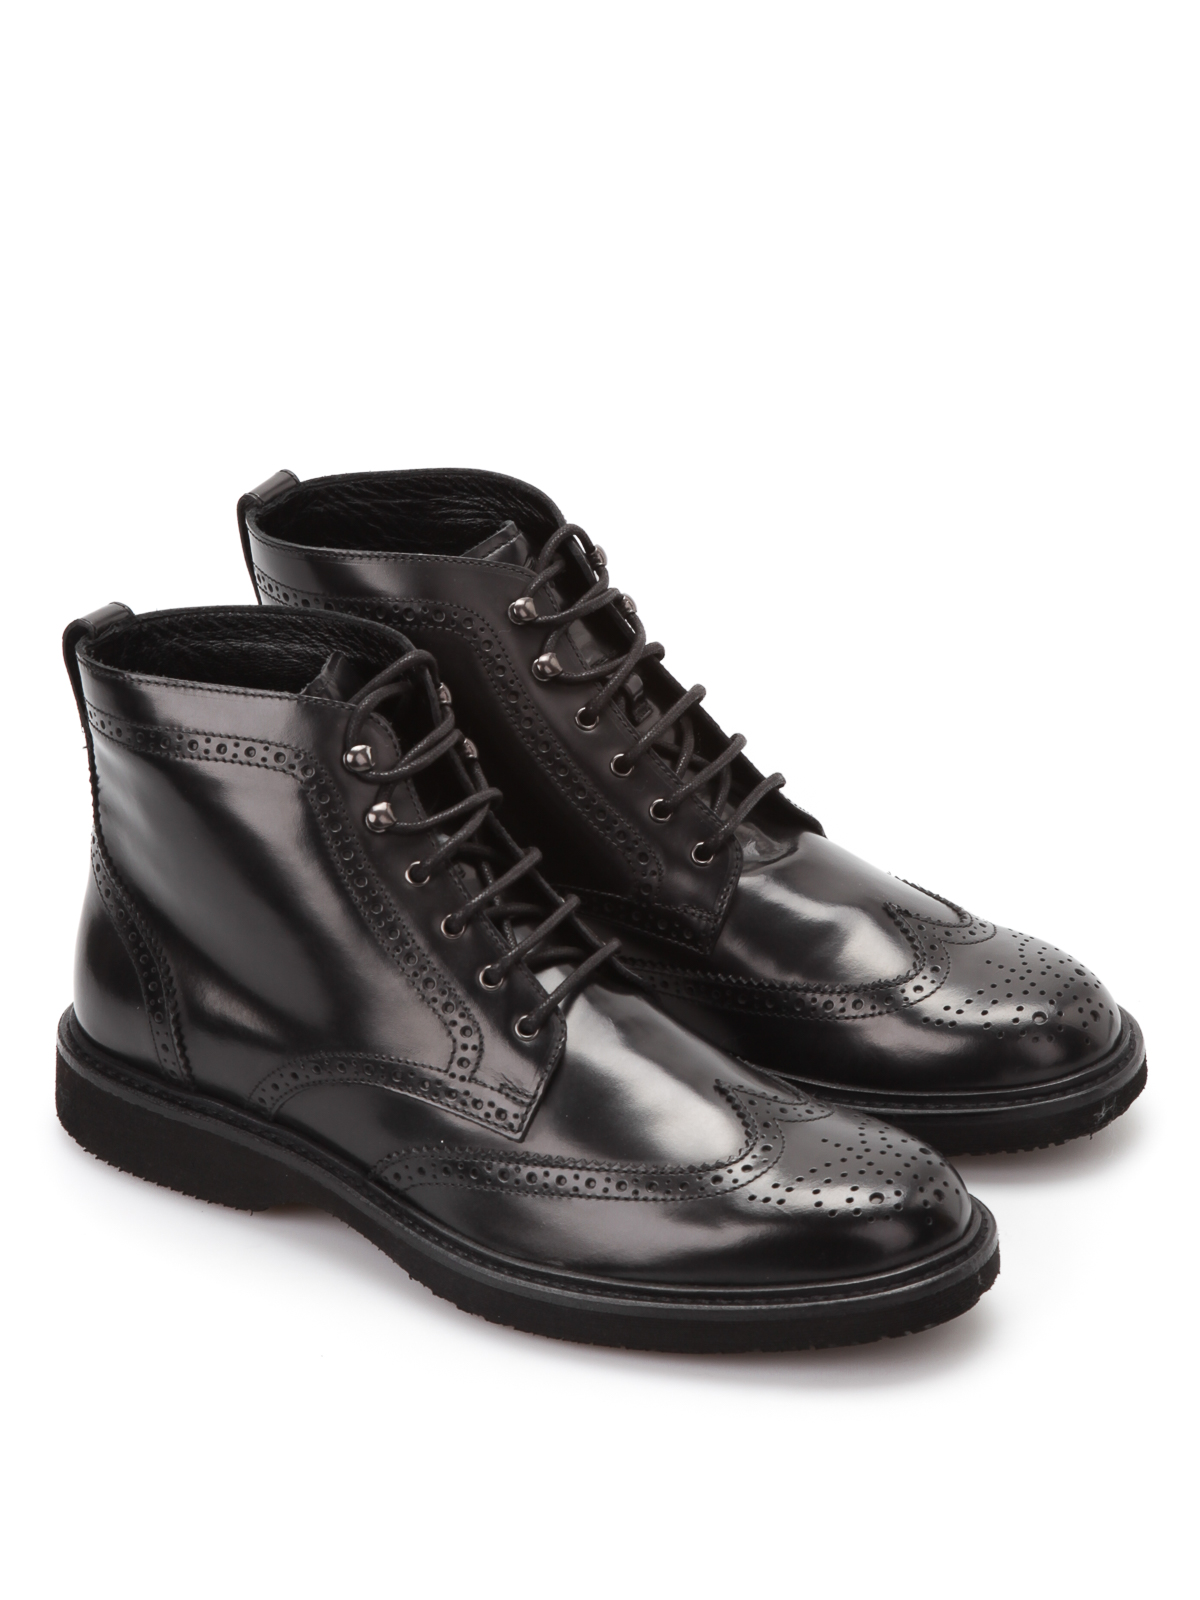 a9ca78542eeb5 Hogan - Lace-up brogue ankle boots - ankle boots - HXM2170S850 6Q6 B9999